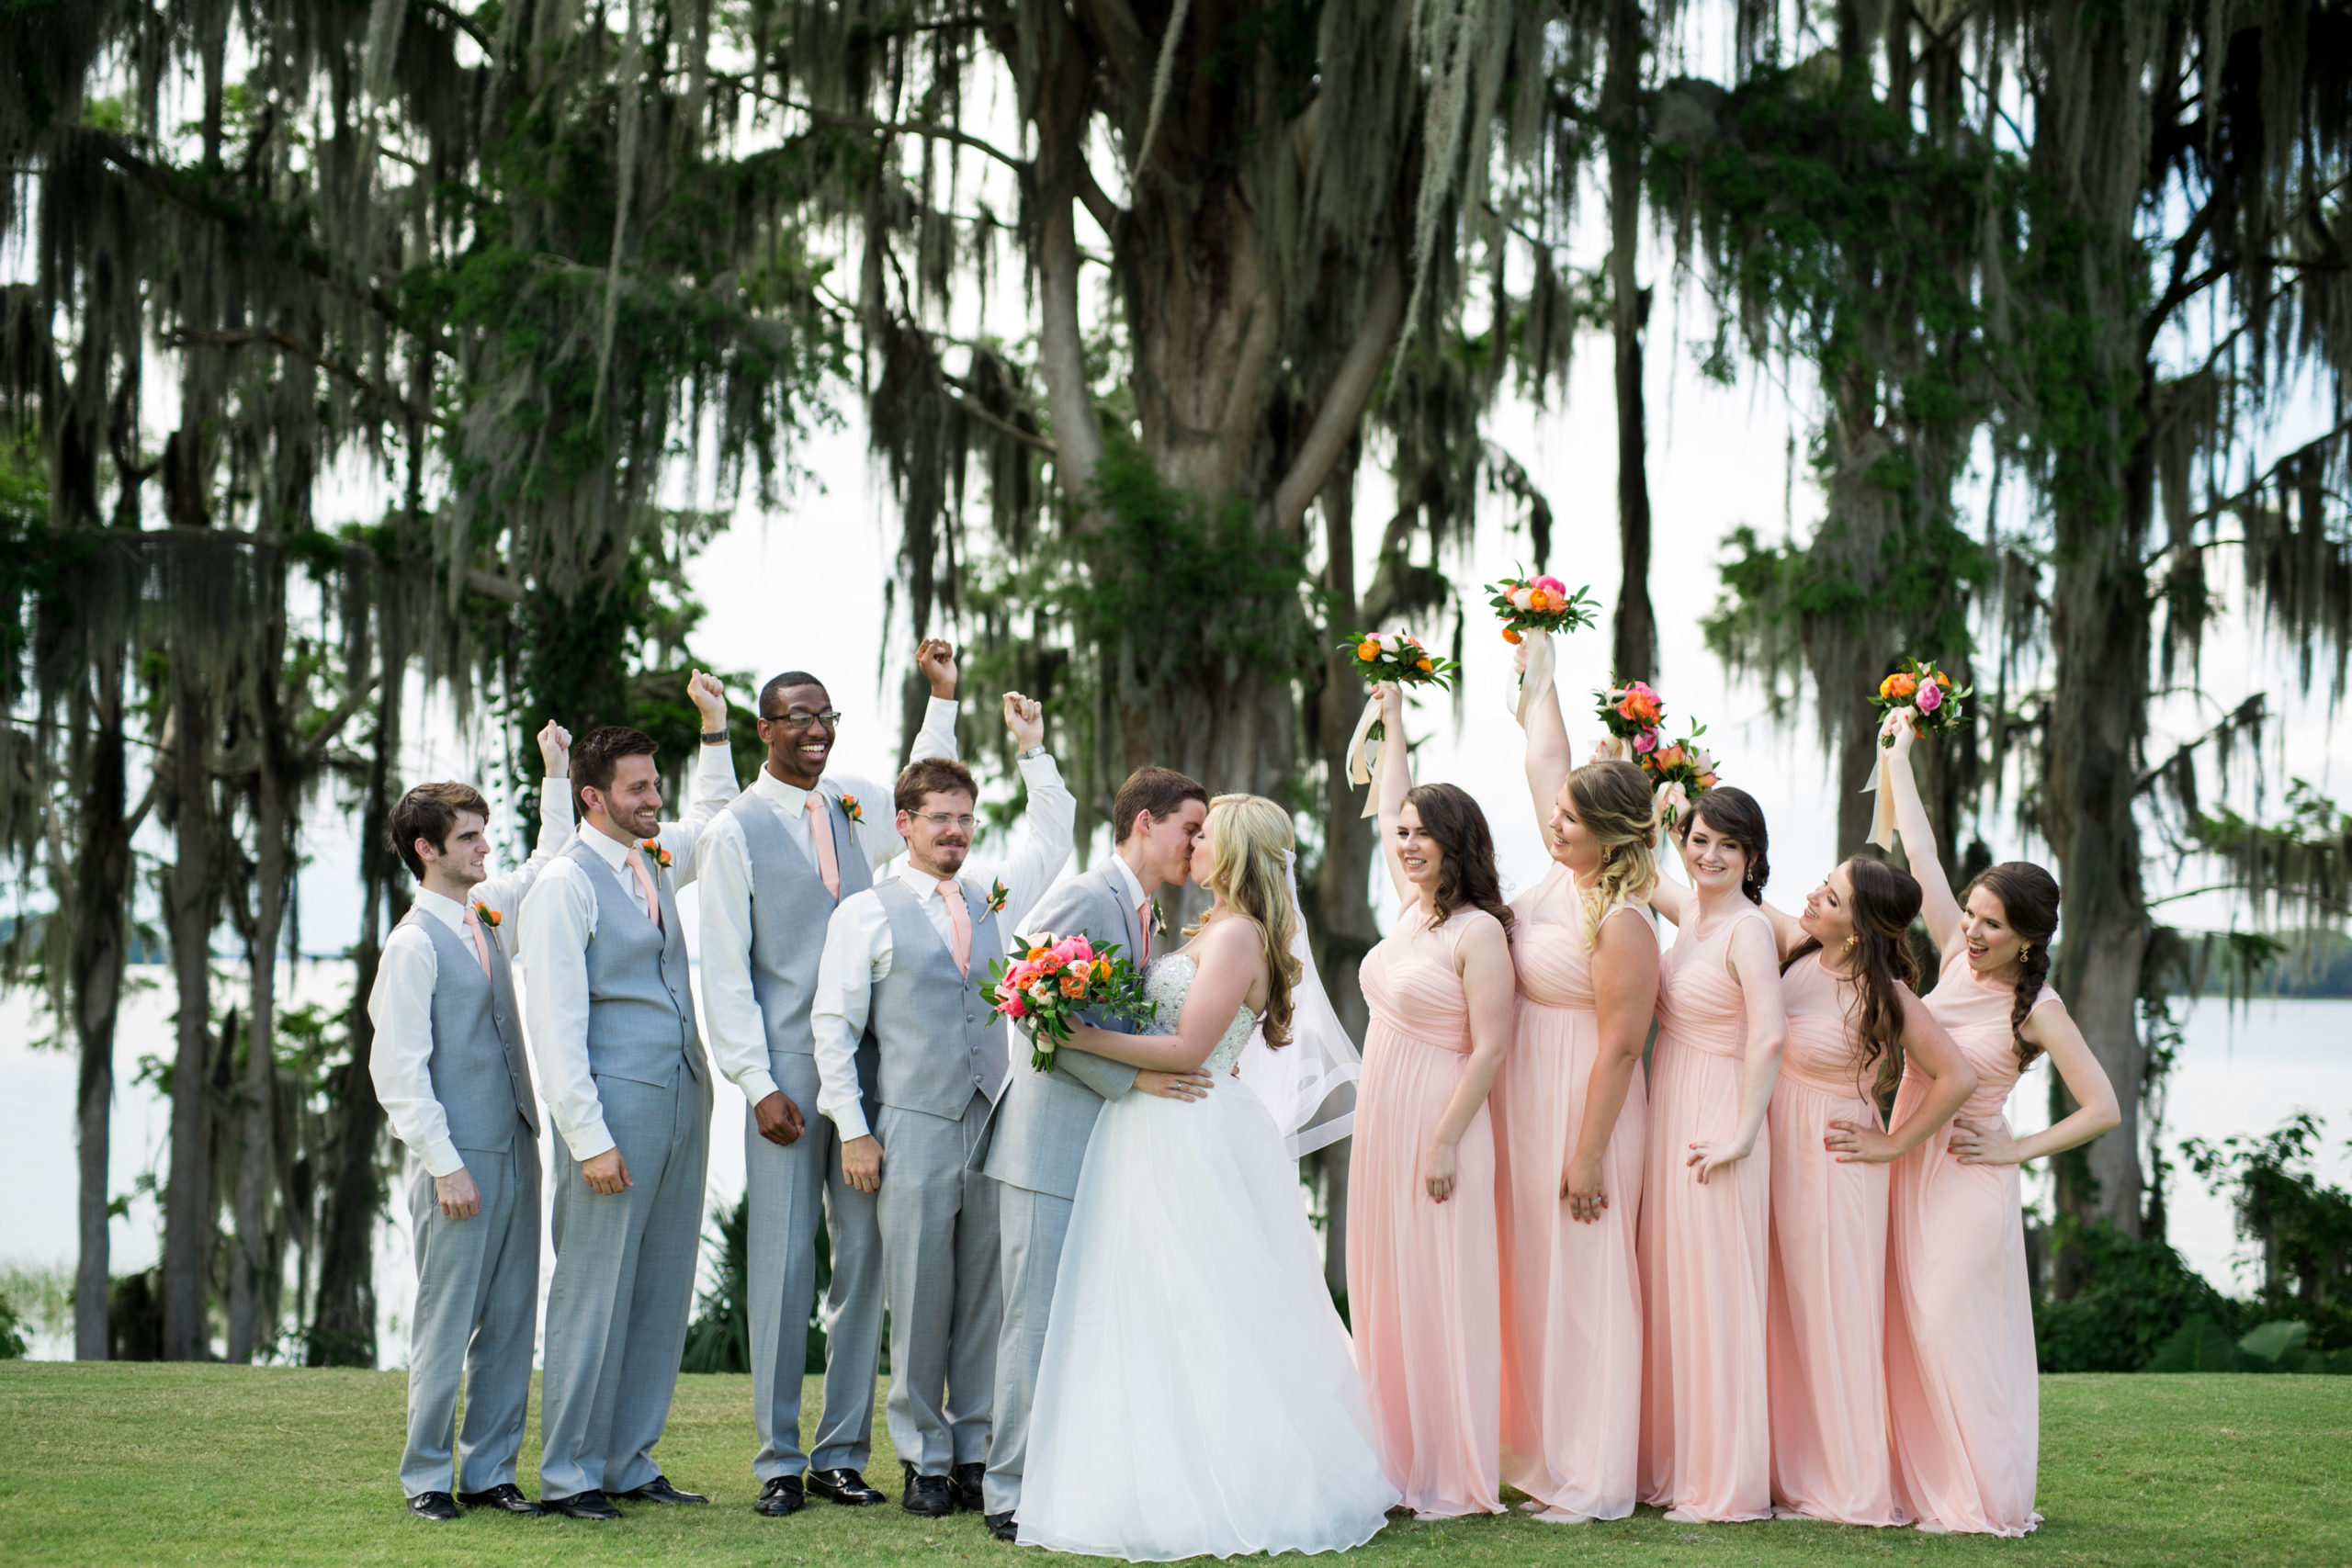 Groomsmen in grey and bridesmaids in coral with bride and groom kissing featuring shelby crane catering manager